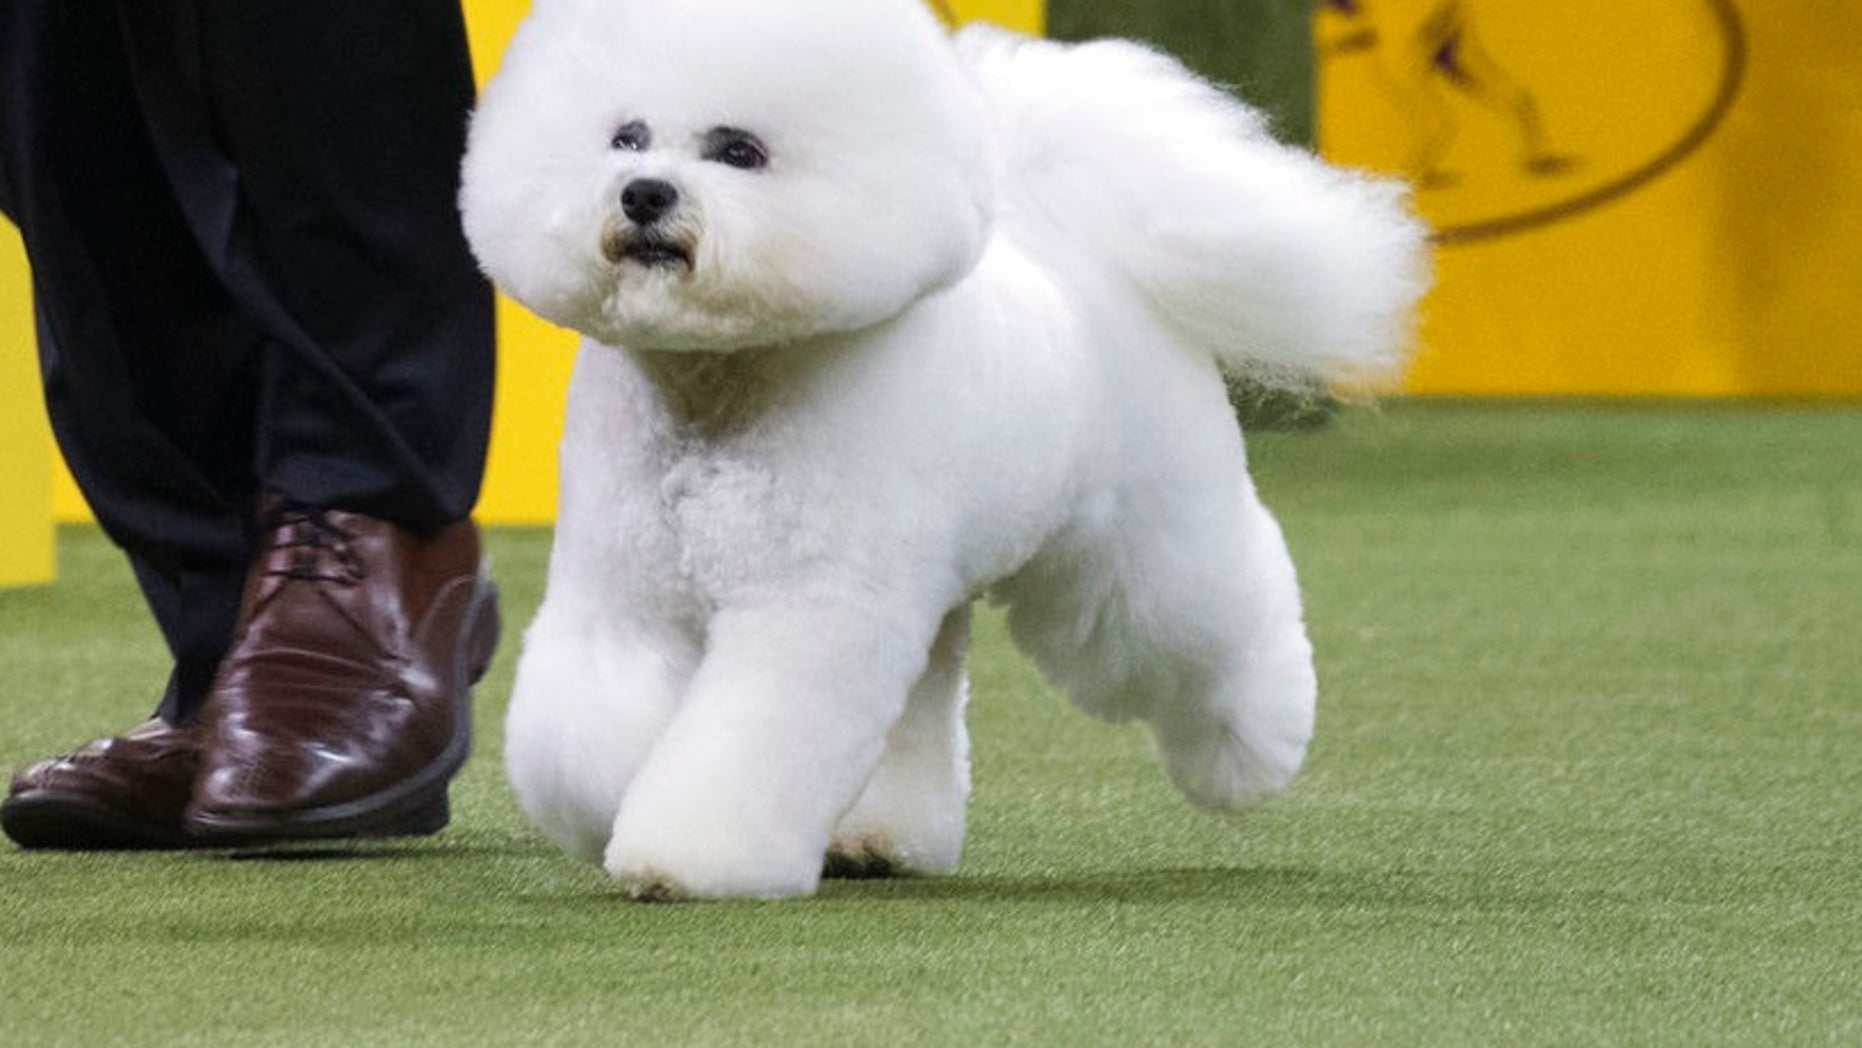 Bill McFadden shows Flynn, a bichon frise, in the ring during the non-sporting group during the 142nd Westminster Kennel Club Dog Show, Monday, Feb. 12, 2018, at Madison Square Garden in New York. Flynn won best in the non-sporting group.